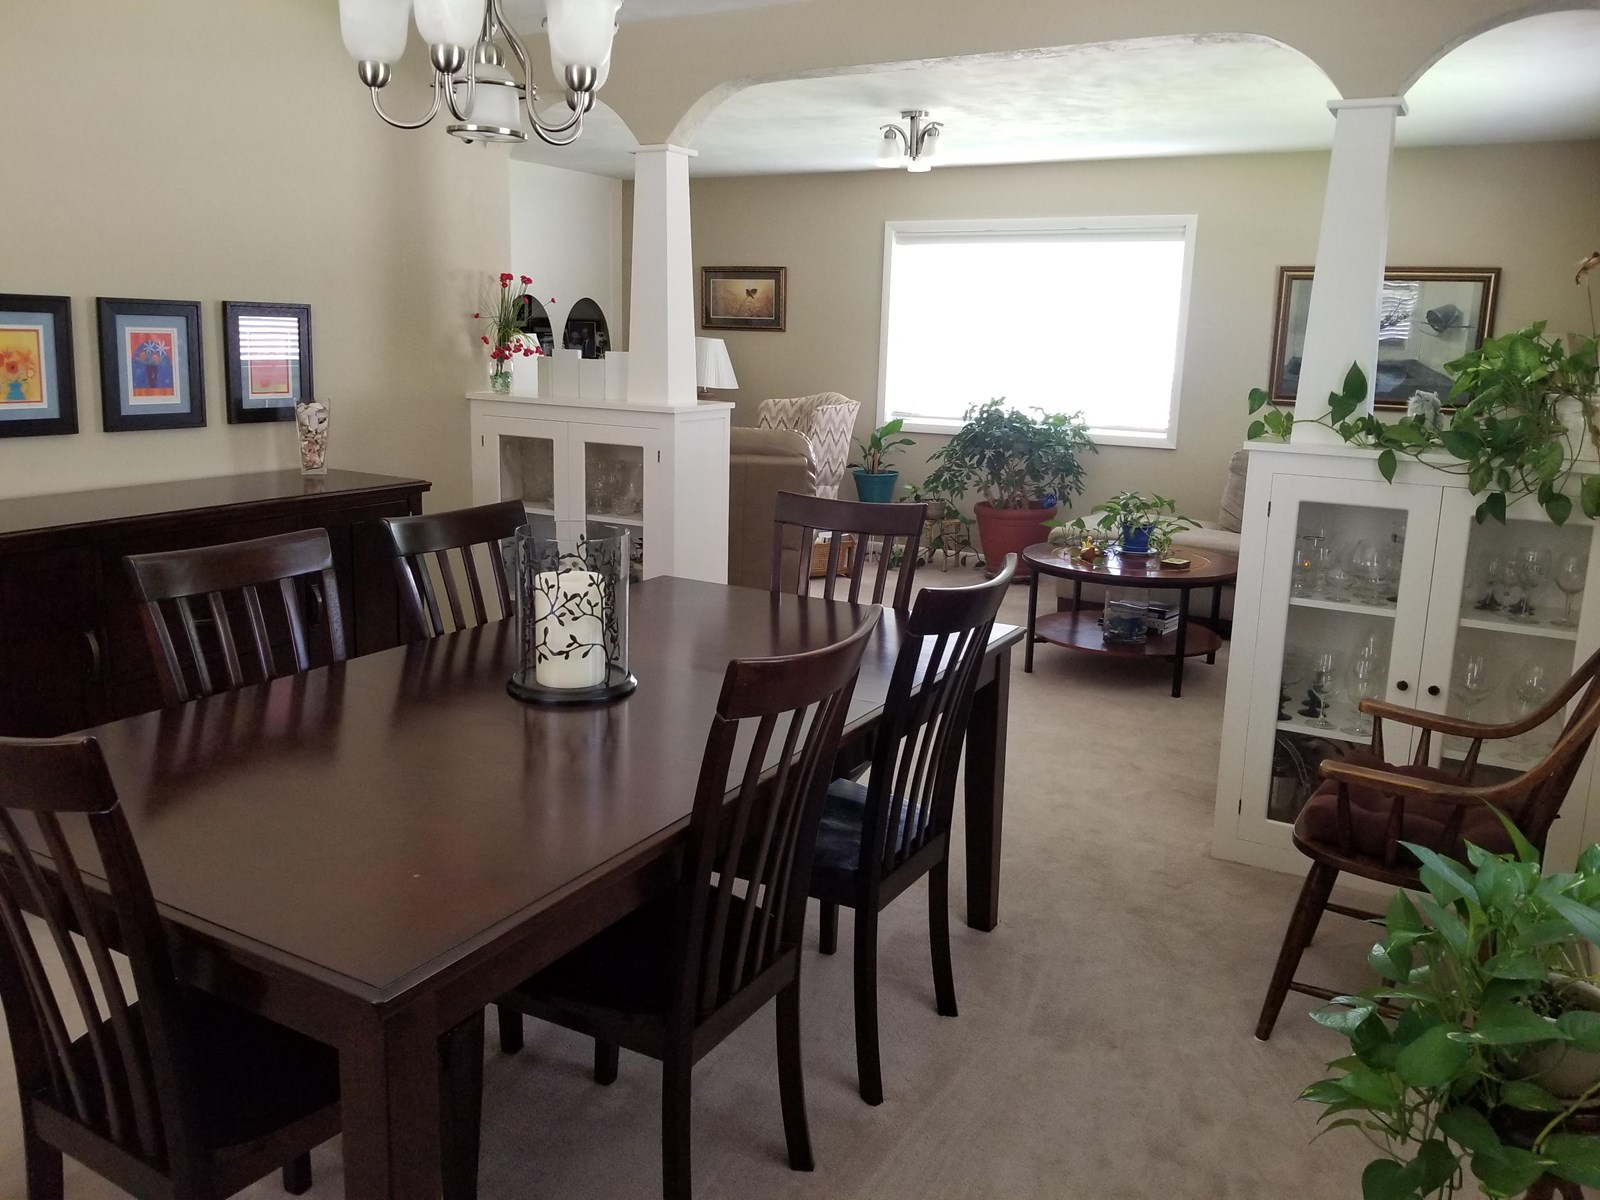 Home in Town for Sale, Move-In Ready, Garage and Basement